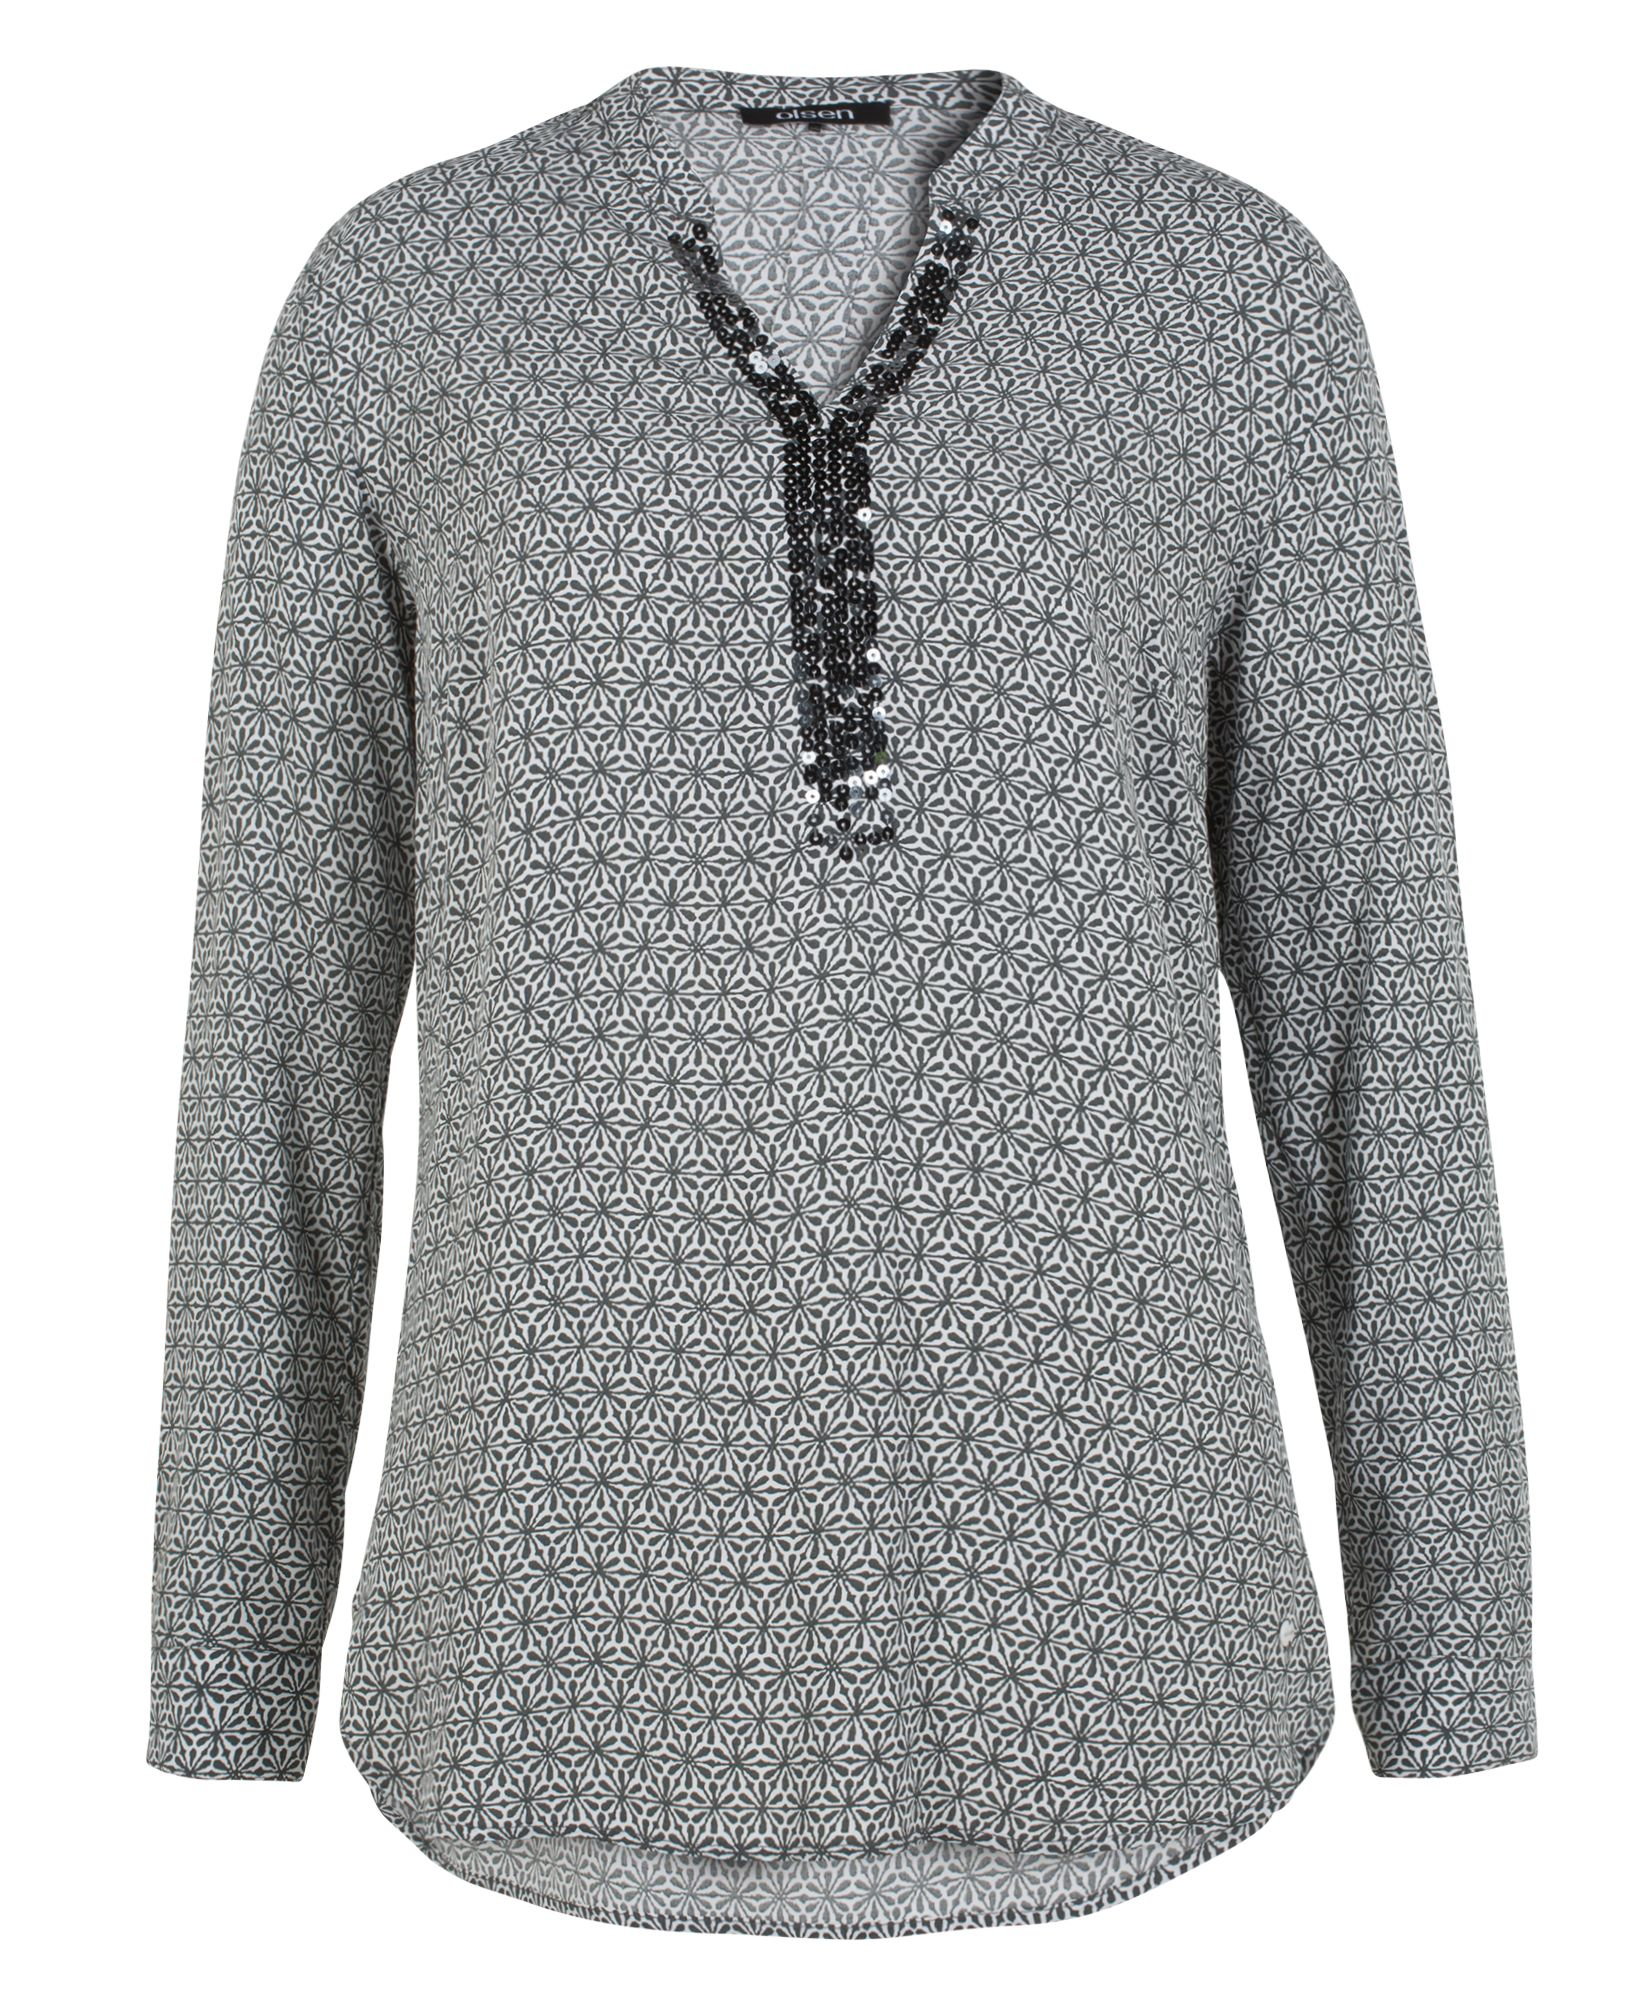 Olsen Blouse Sequins, Grey